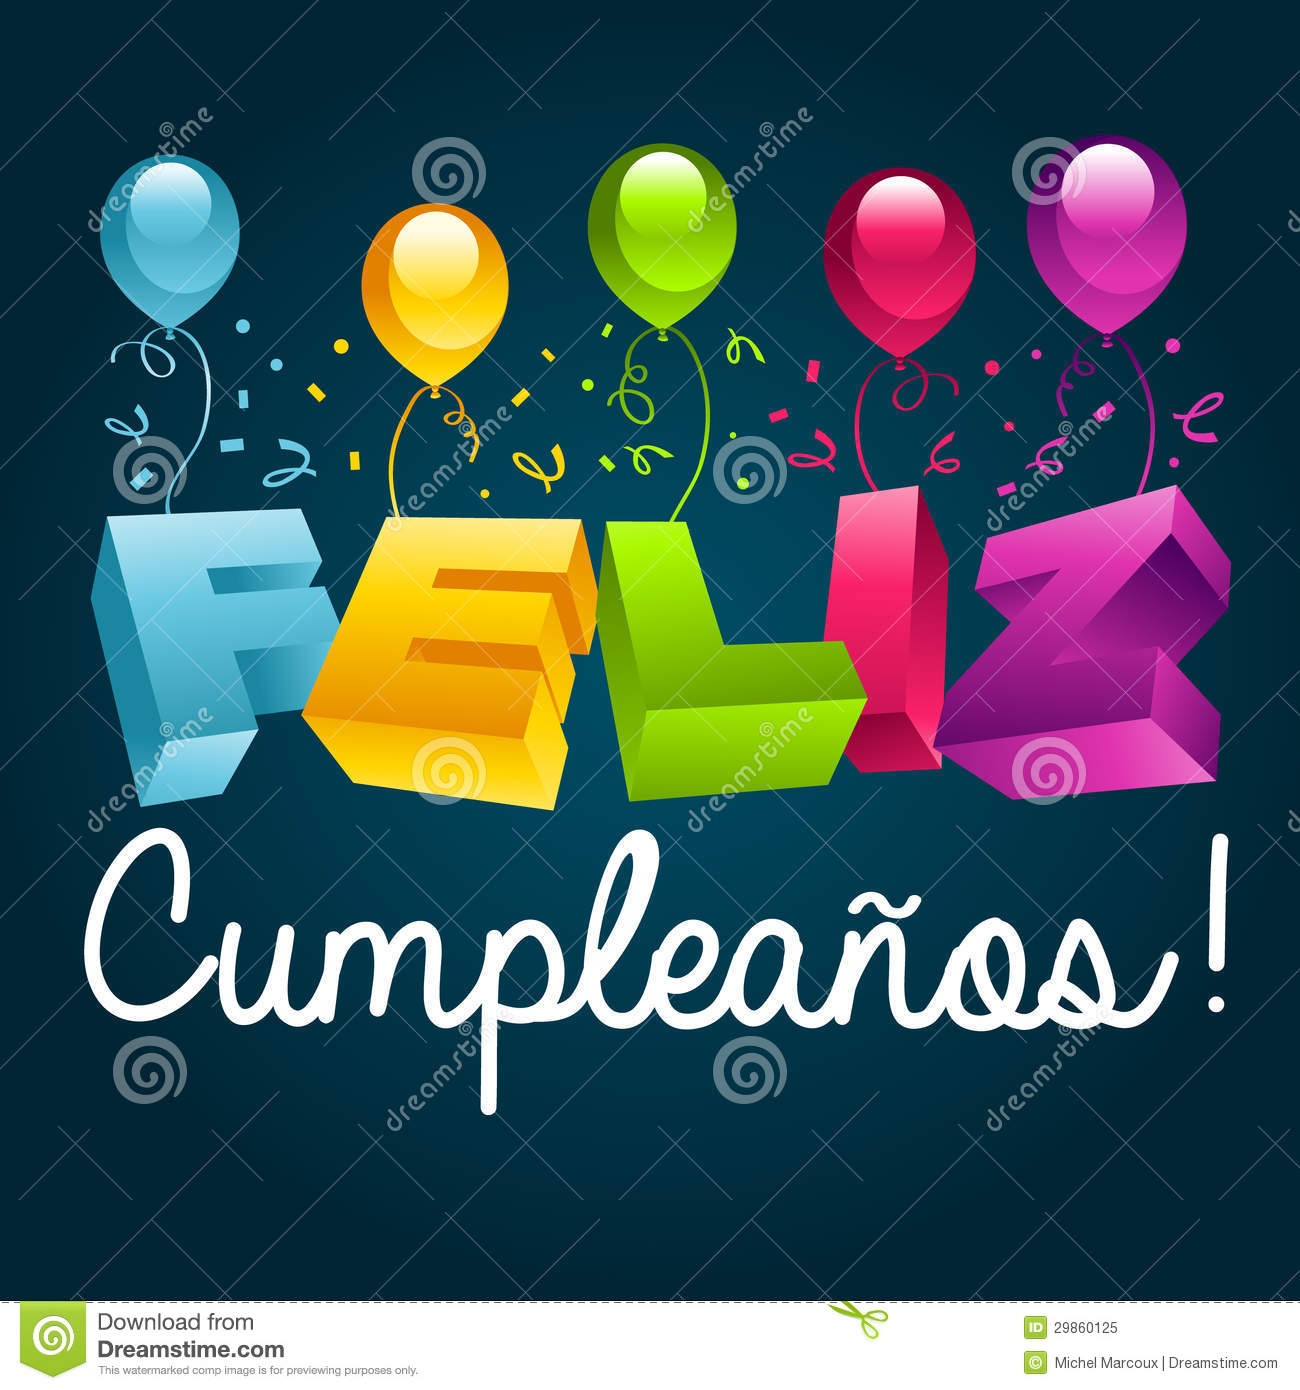 Happy Birthday In Spanish Stock Vector. Illustration Of Card - 29860125 - Free Printable Happy Birthday Cards In Spanish